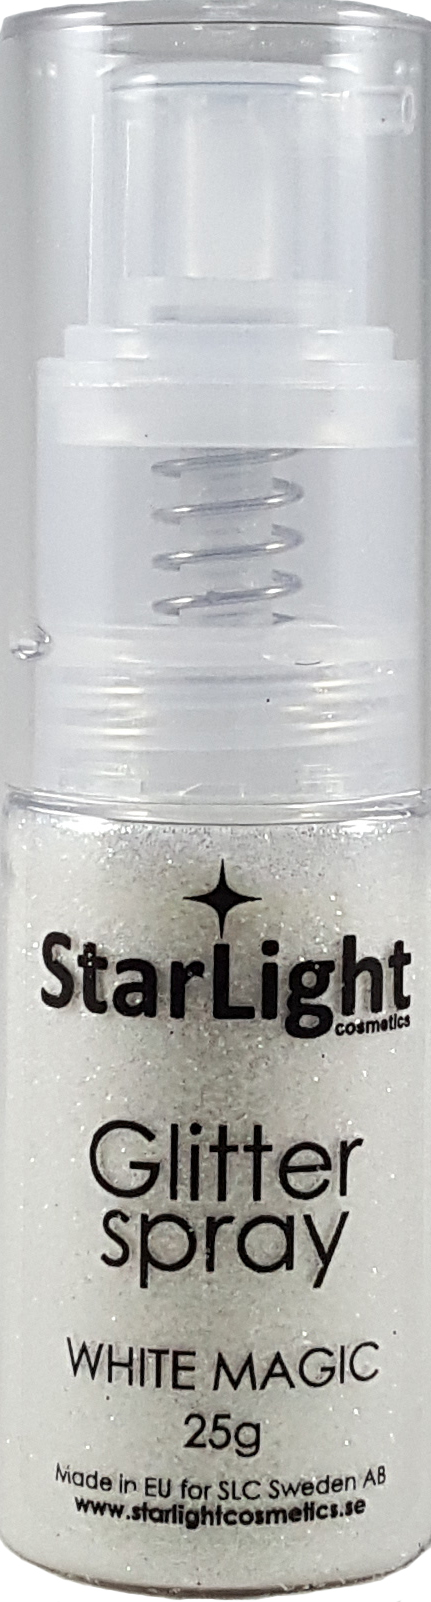 Naglar Glitter Spray White Magic - 24 gram